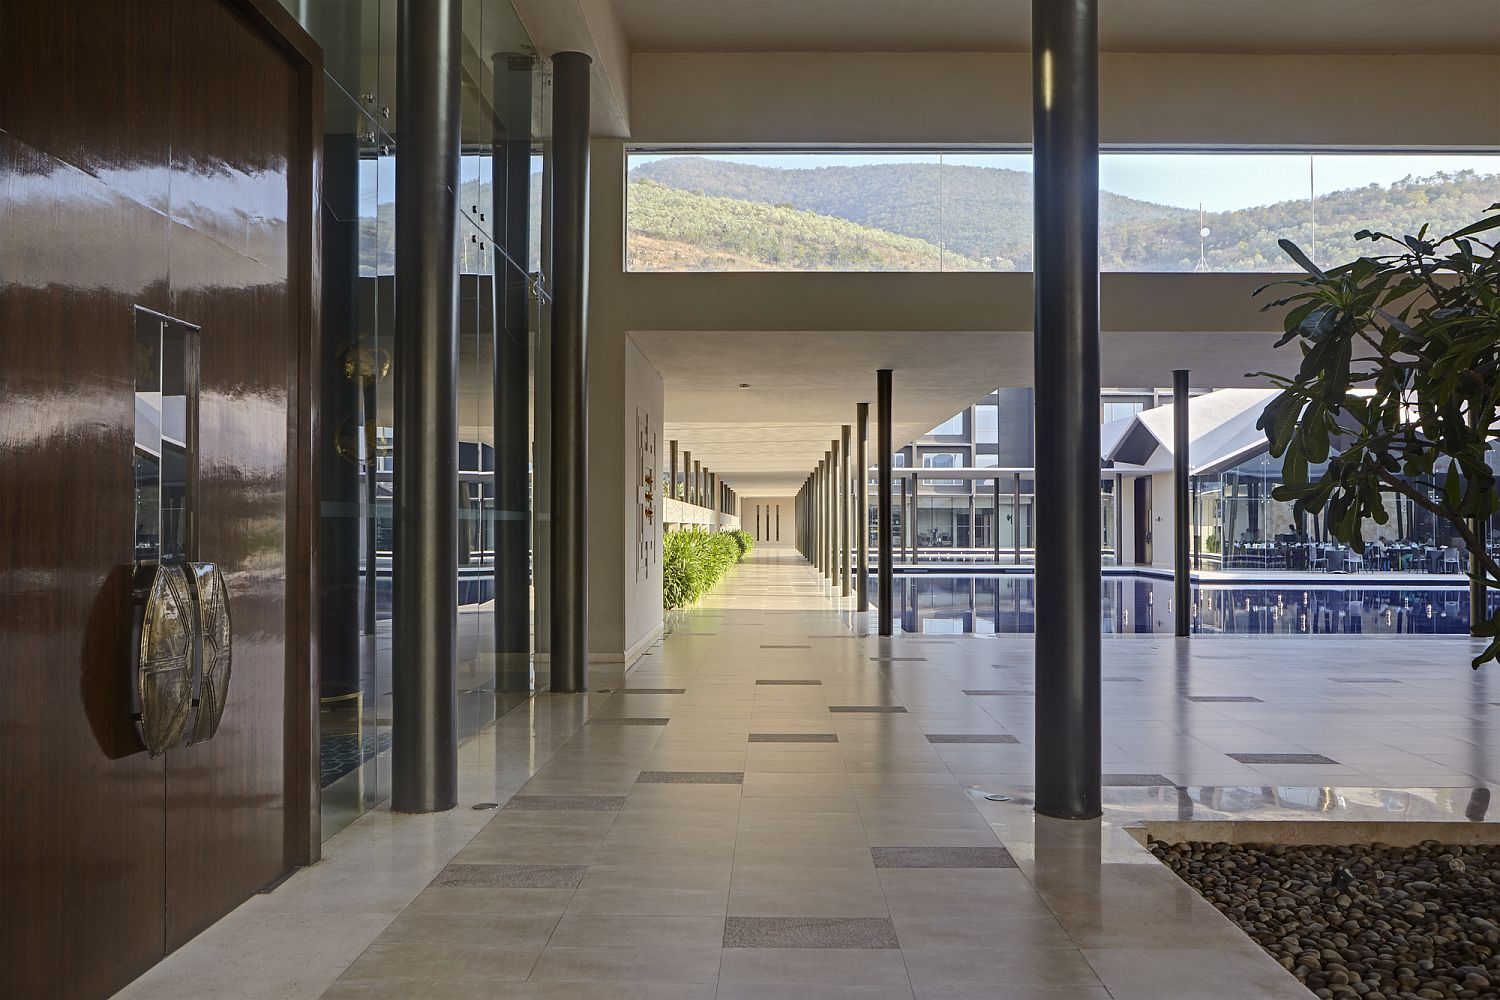 Lavish hotel in Tirupati with a central courtyard, pool, waterbody and spa